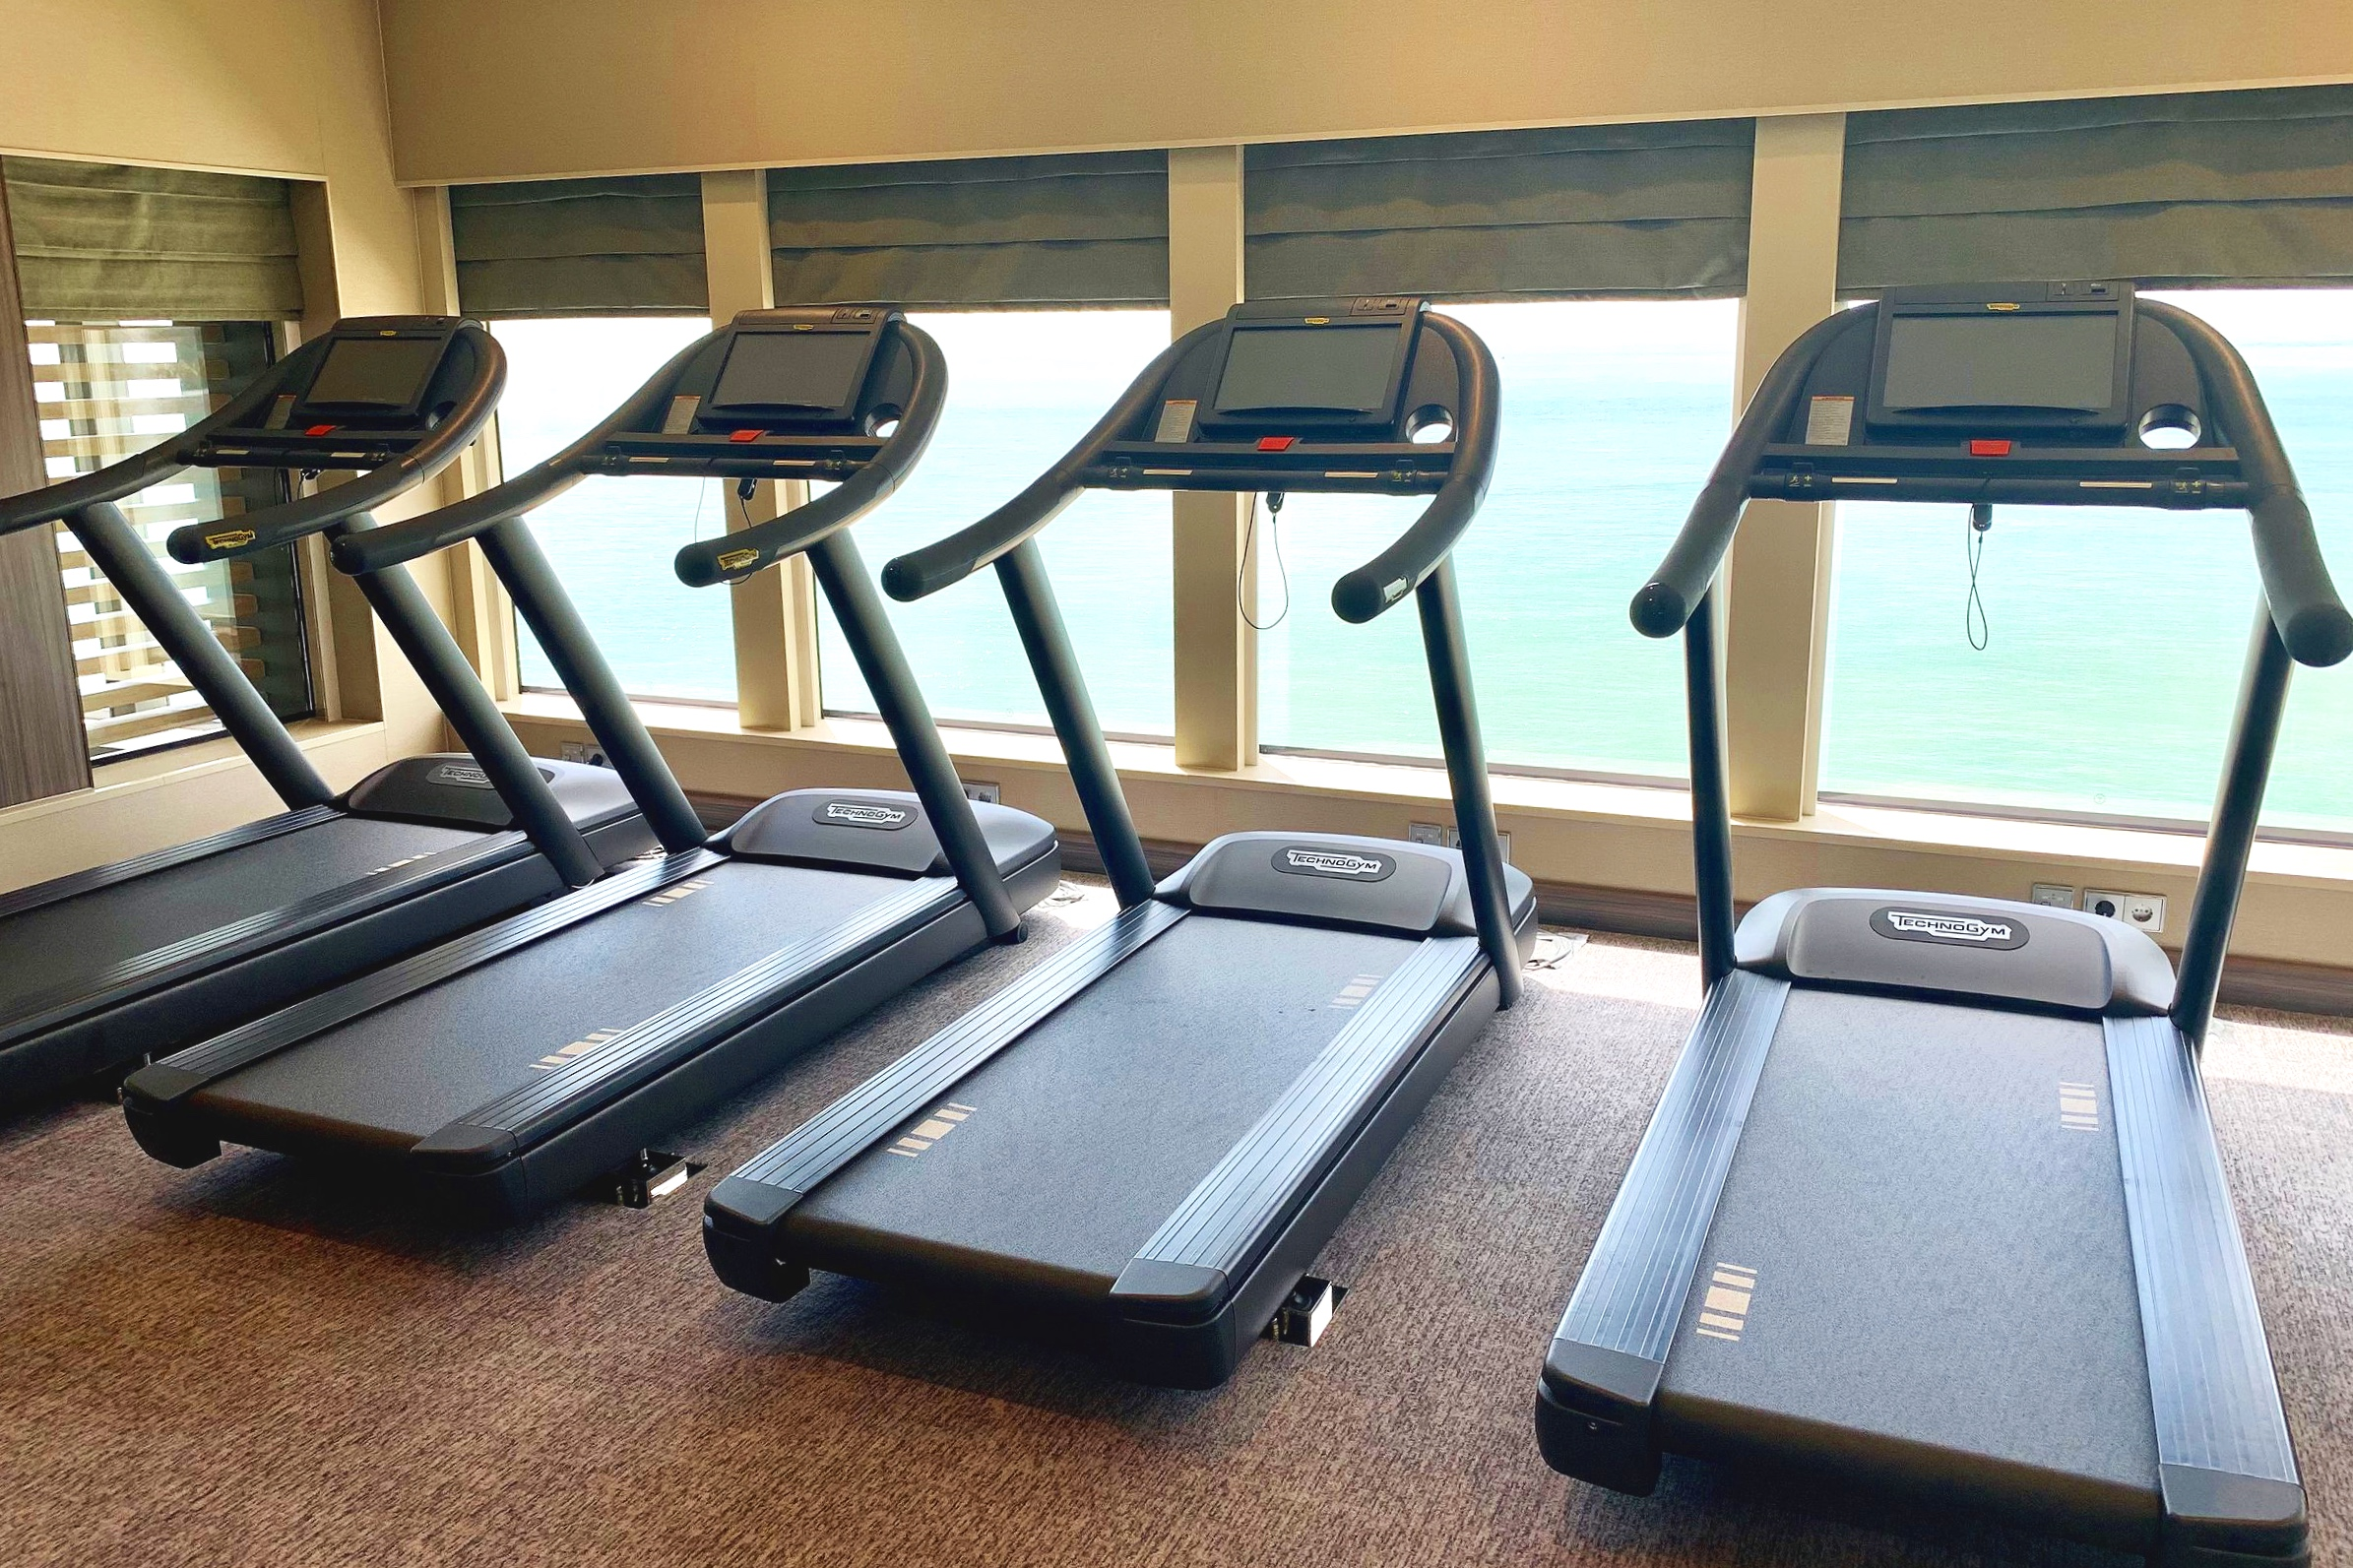 The treadmills have a pretty good view!